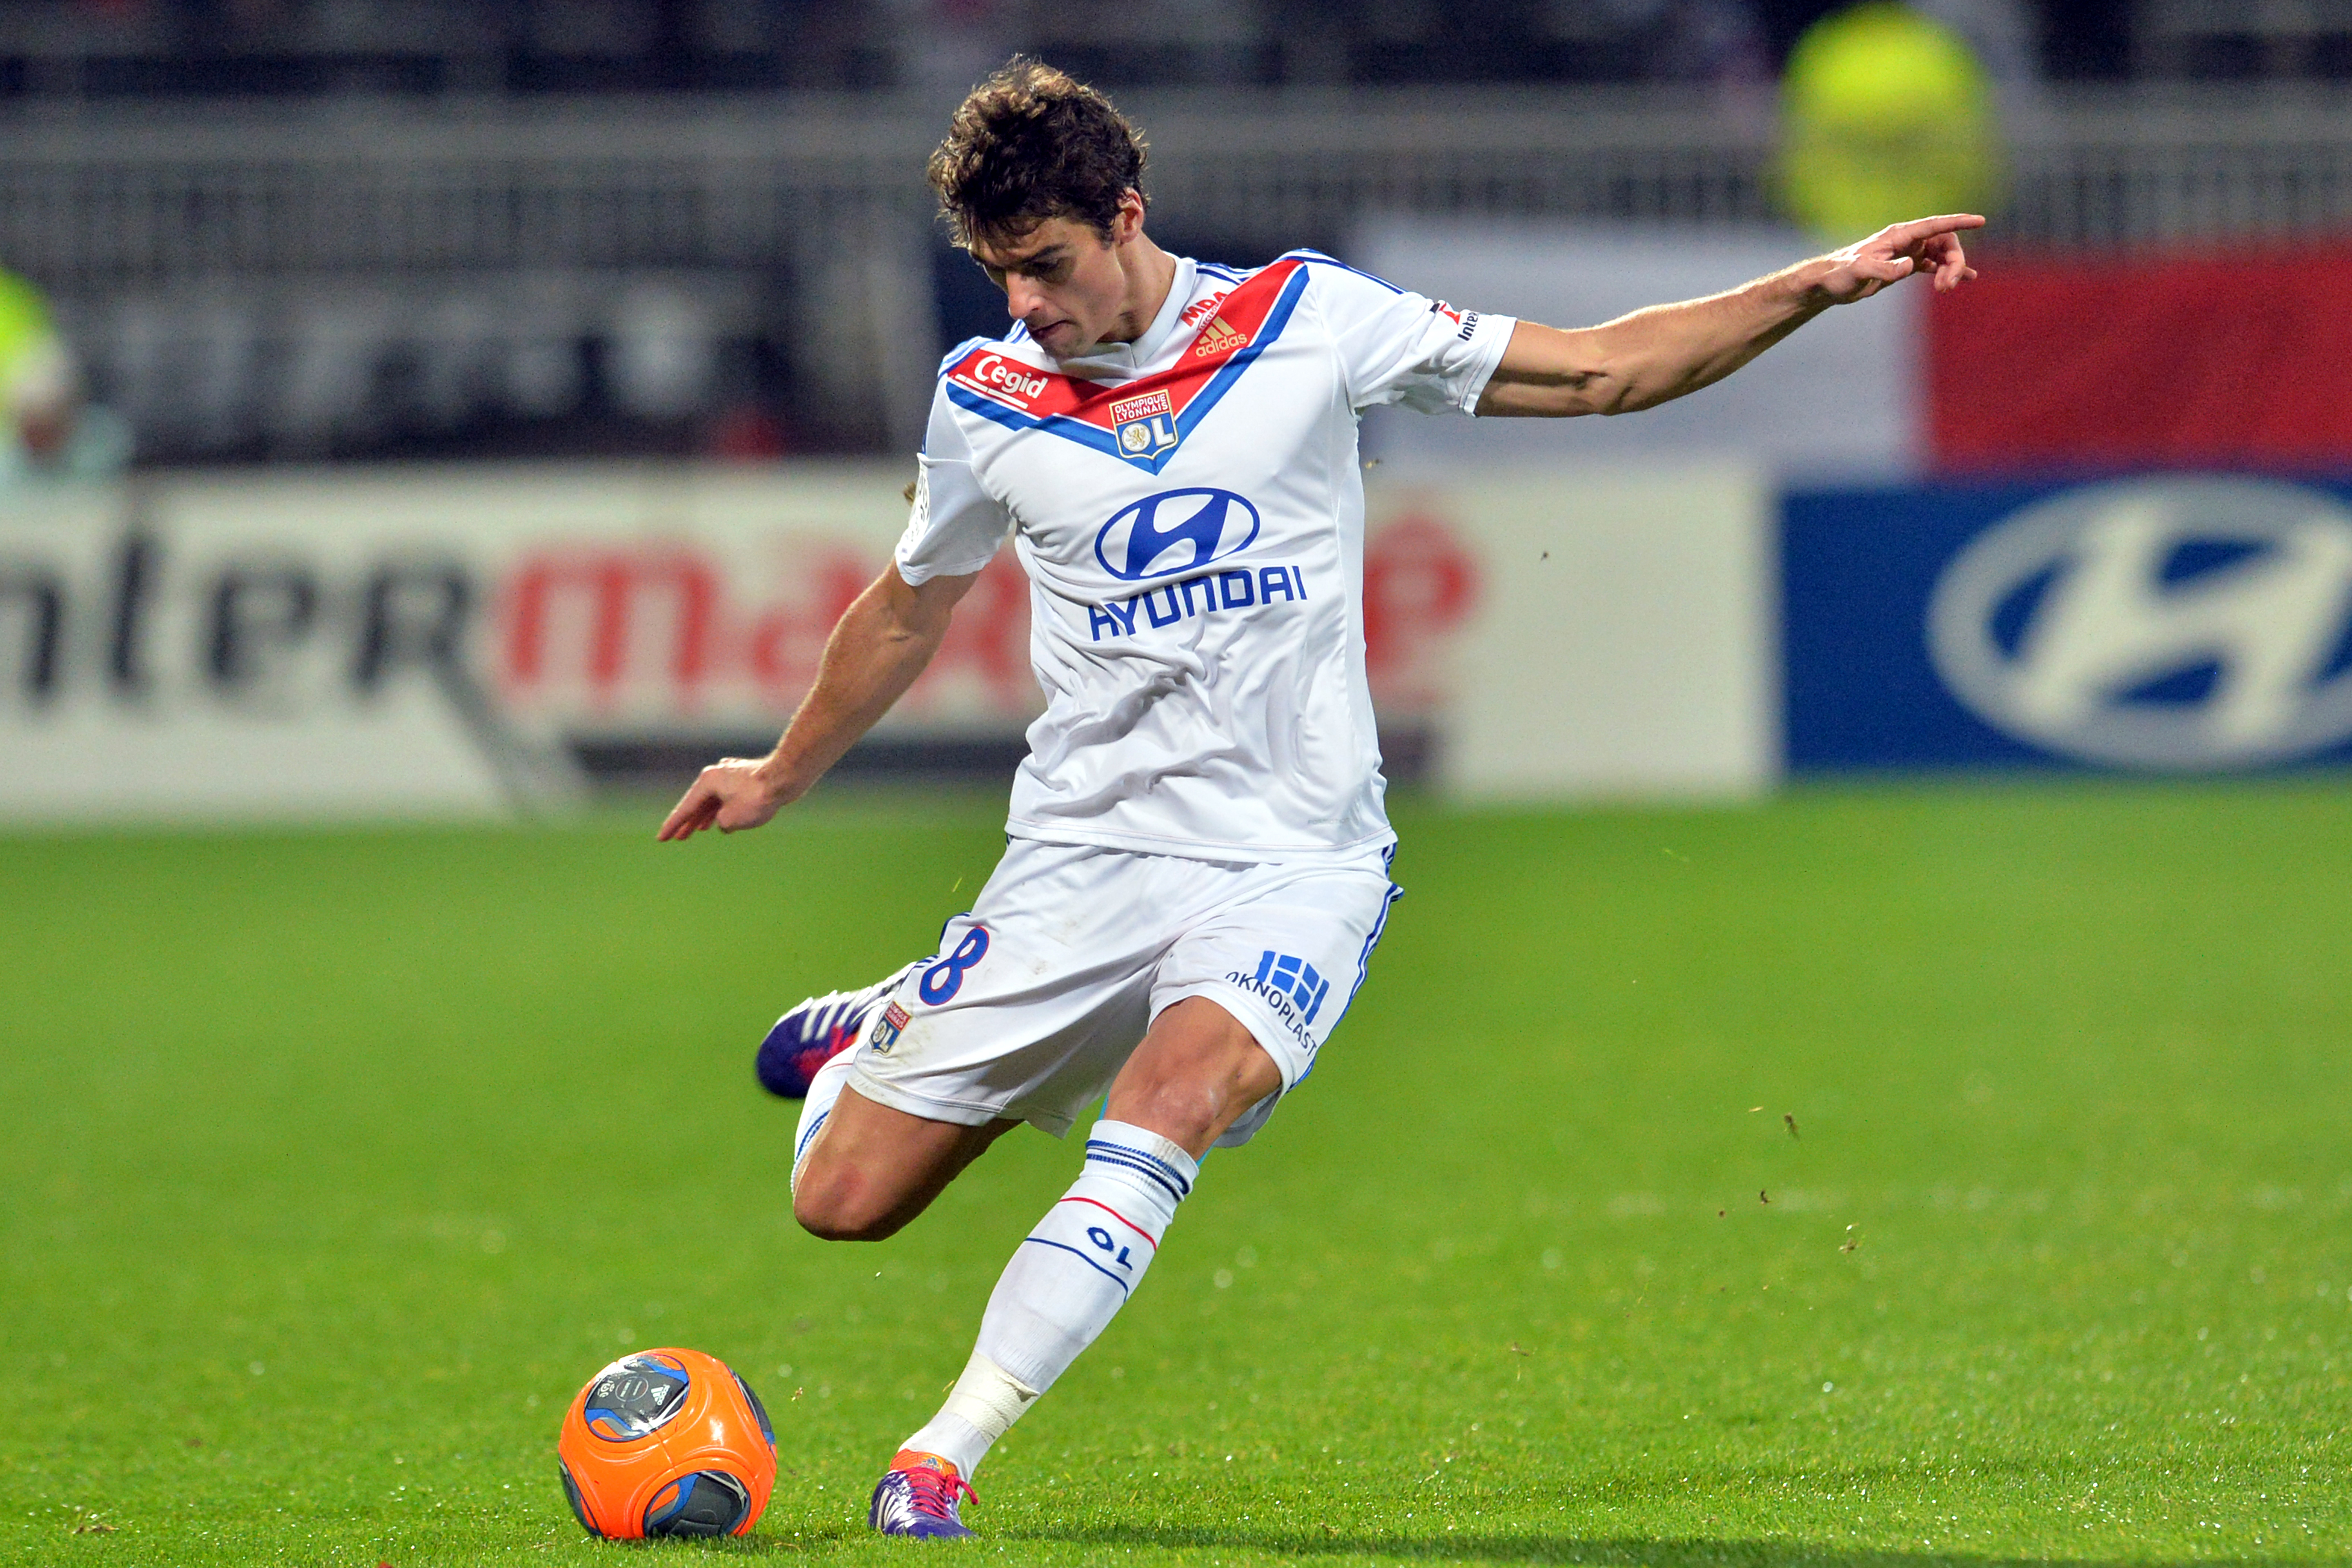 Arsenal target Yoann Gourcuff in talks with 'big club' over January transfer